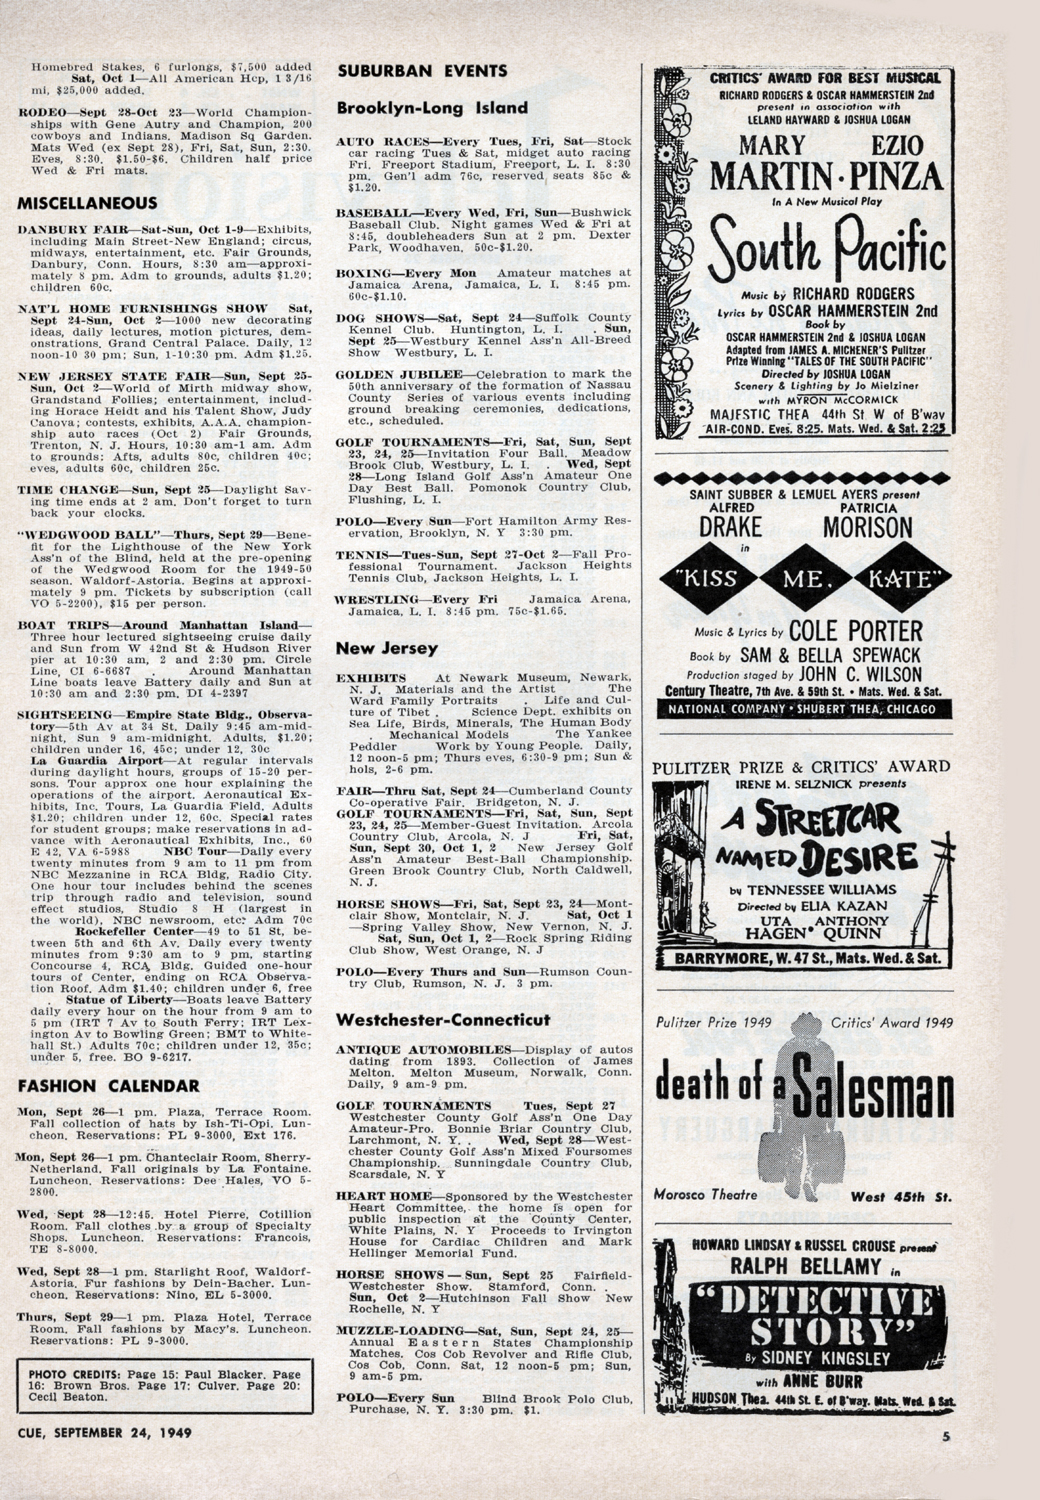 September 24, 1949 Pg. 5 INSIDE  CUE : Miscellaneous Listings, Fashion Calendar, Suburban Events: Brooklyn-Long Island, New Jersey, Westchester-Connecticut